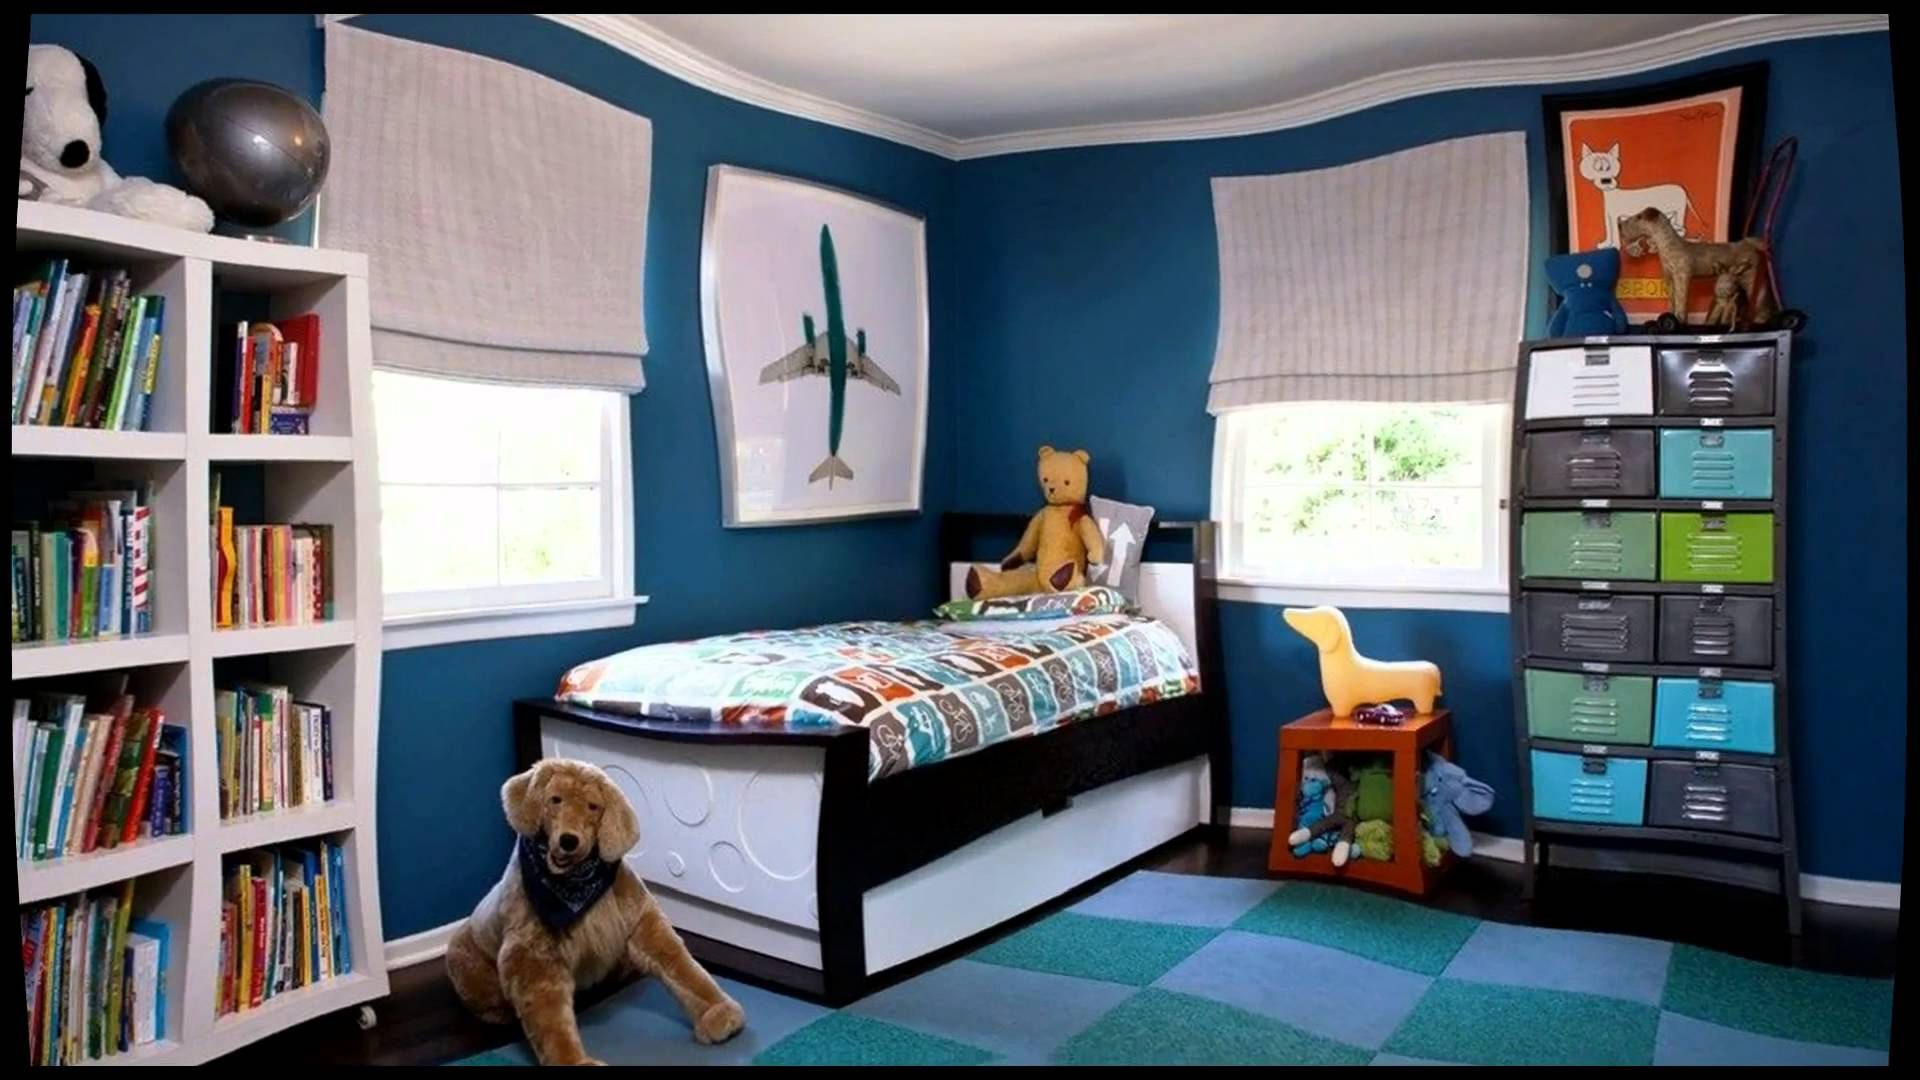 Cute Bedroom Ideas For Little Boys Bedroom Wall Decor 79683261 Bedroom Picture Ideas Diy Bedroom Decor Boy Room Paint Boys Room Blue Cool Bedrooms For Boys